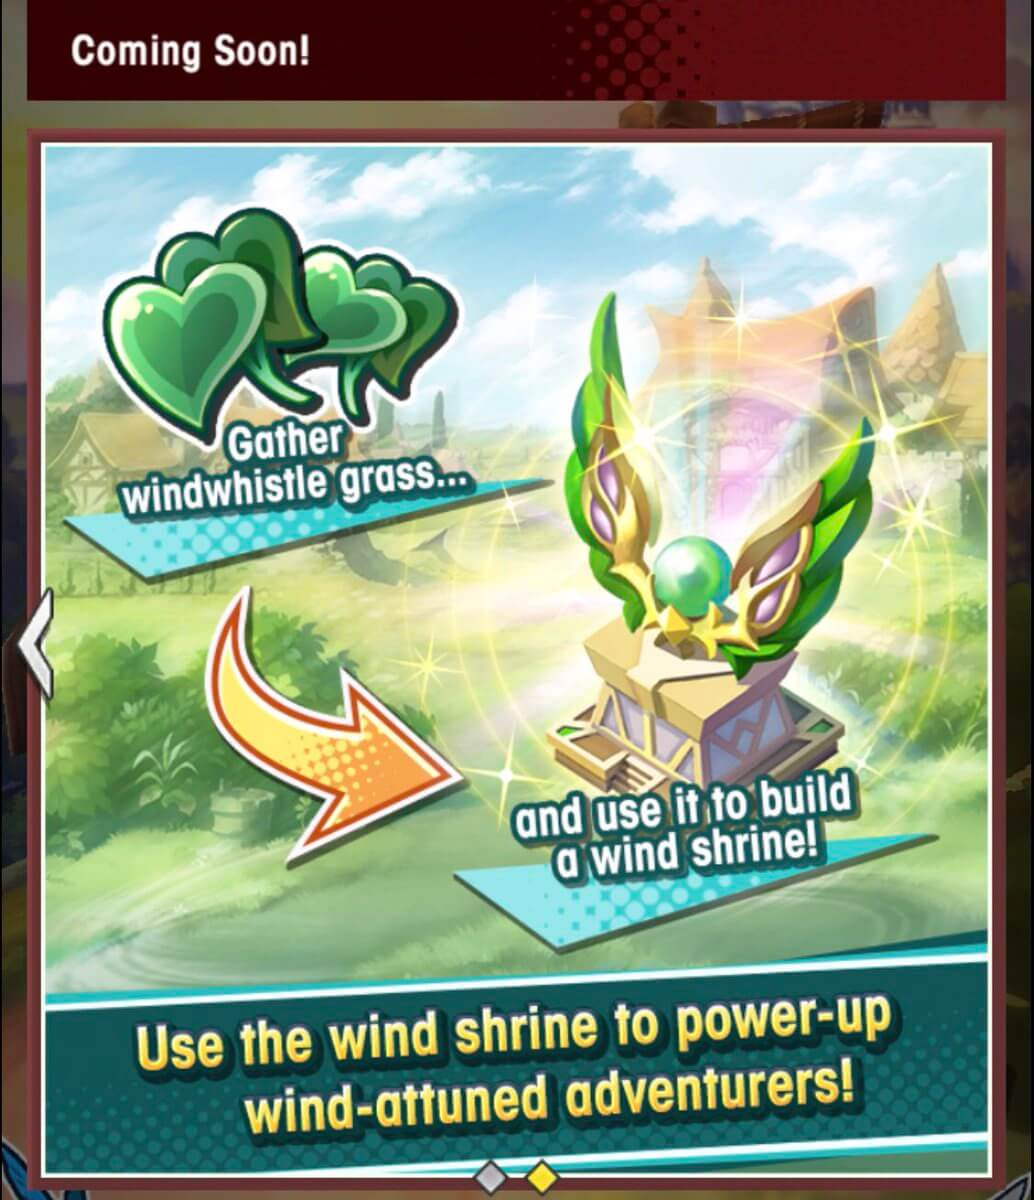 Next Facility Event - a Wish to the Winds Begins Nov 14